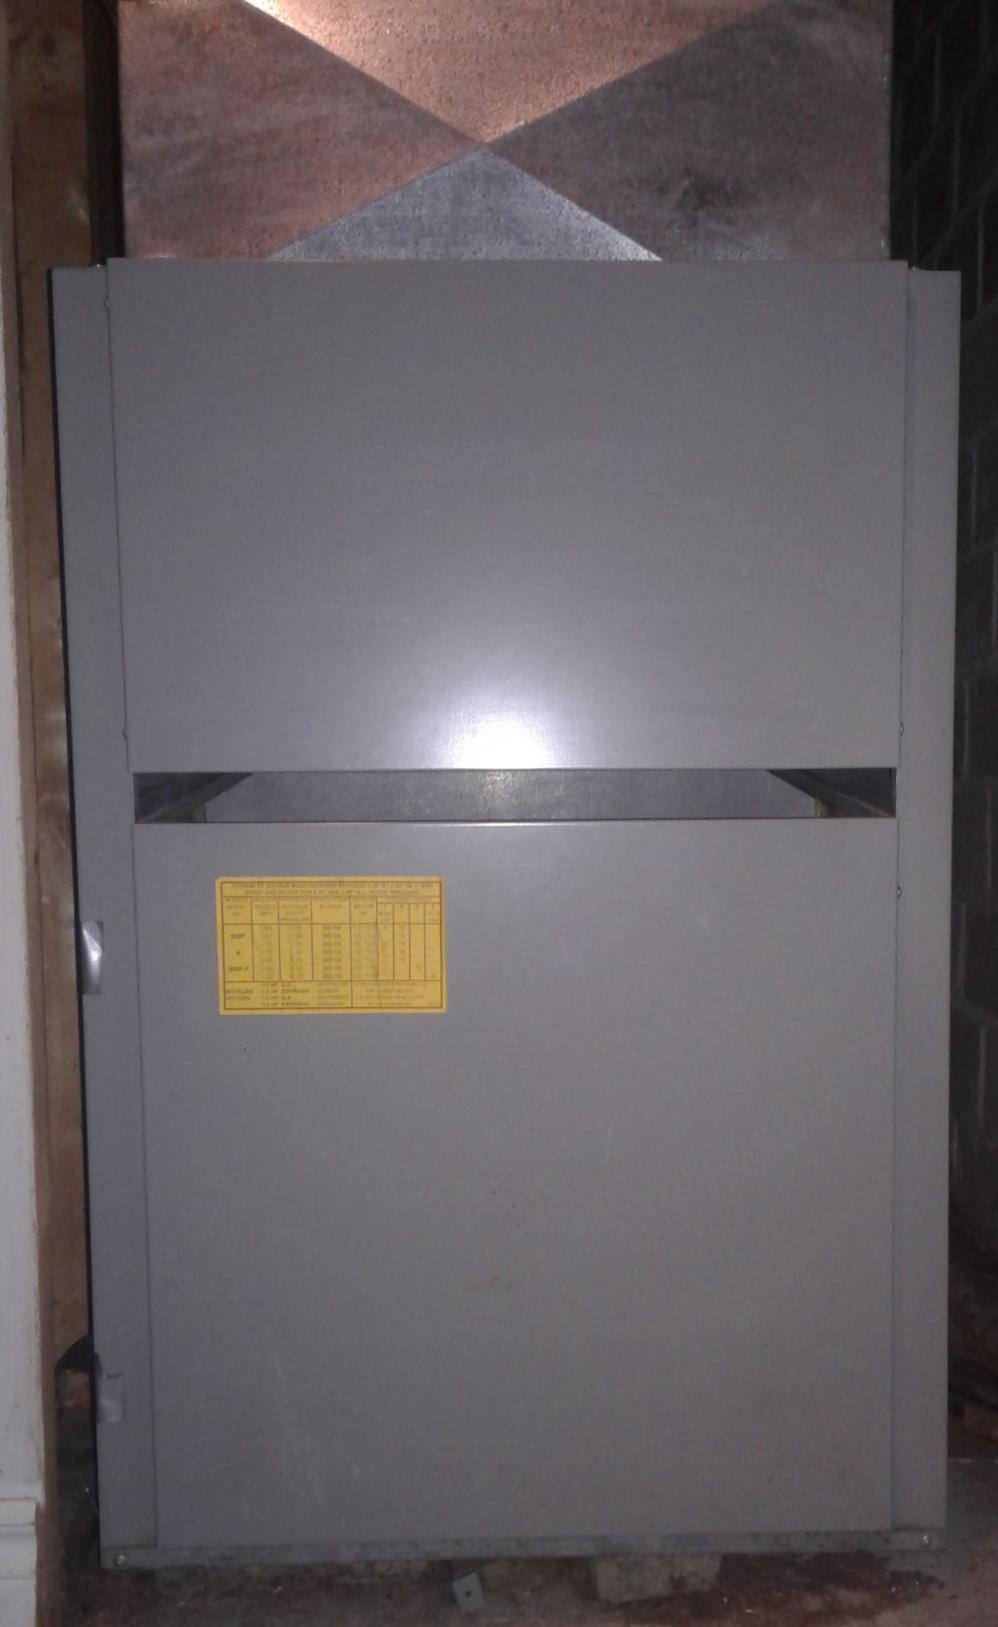 Oil Furnace Air Filter